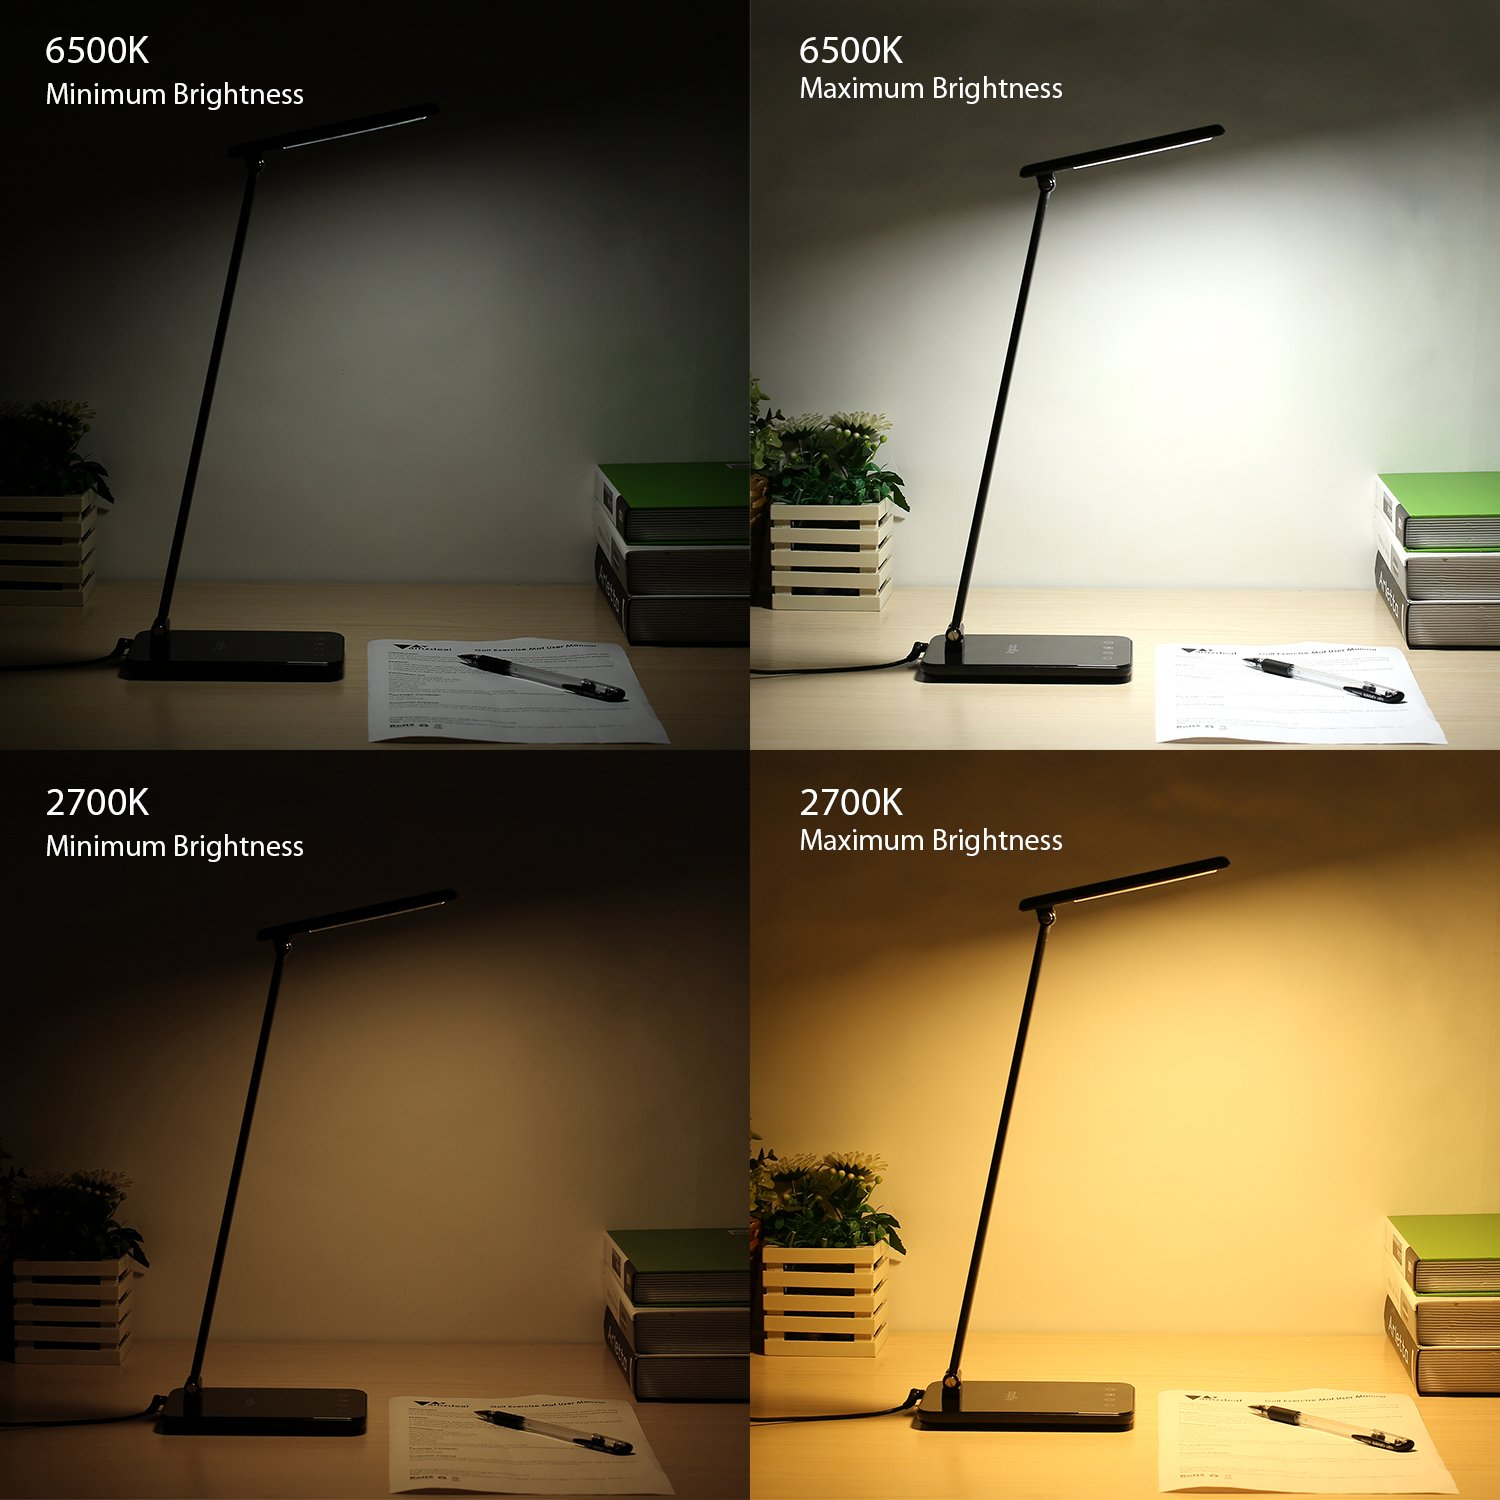 LED Desk Lamp 8W, Aglaia Eye-Caring Table Lamps with Dimmable Touch Control, Stepless Brightness Levels and Lighting Modes, Aluminum Alloy ARM, 1-Hour Auto Timer, Memory Function by Aglaia (Image #6)